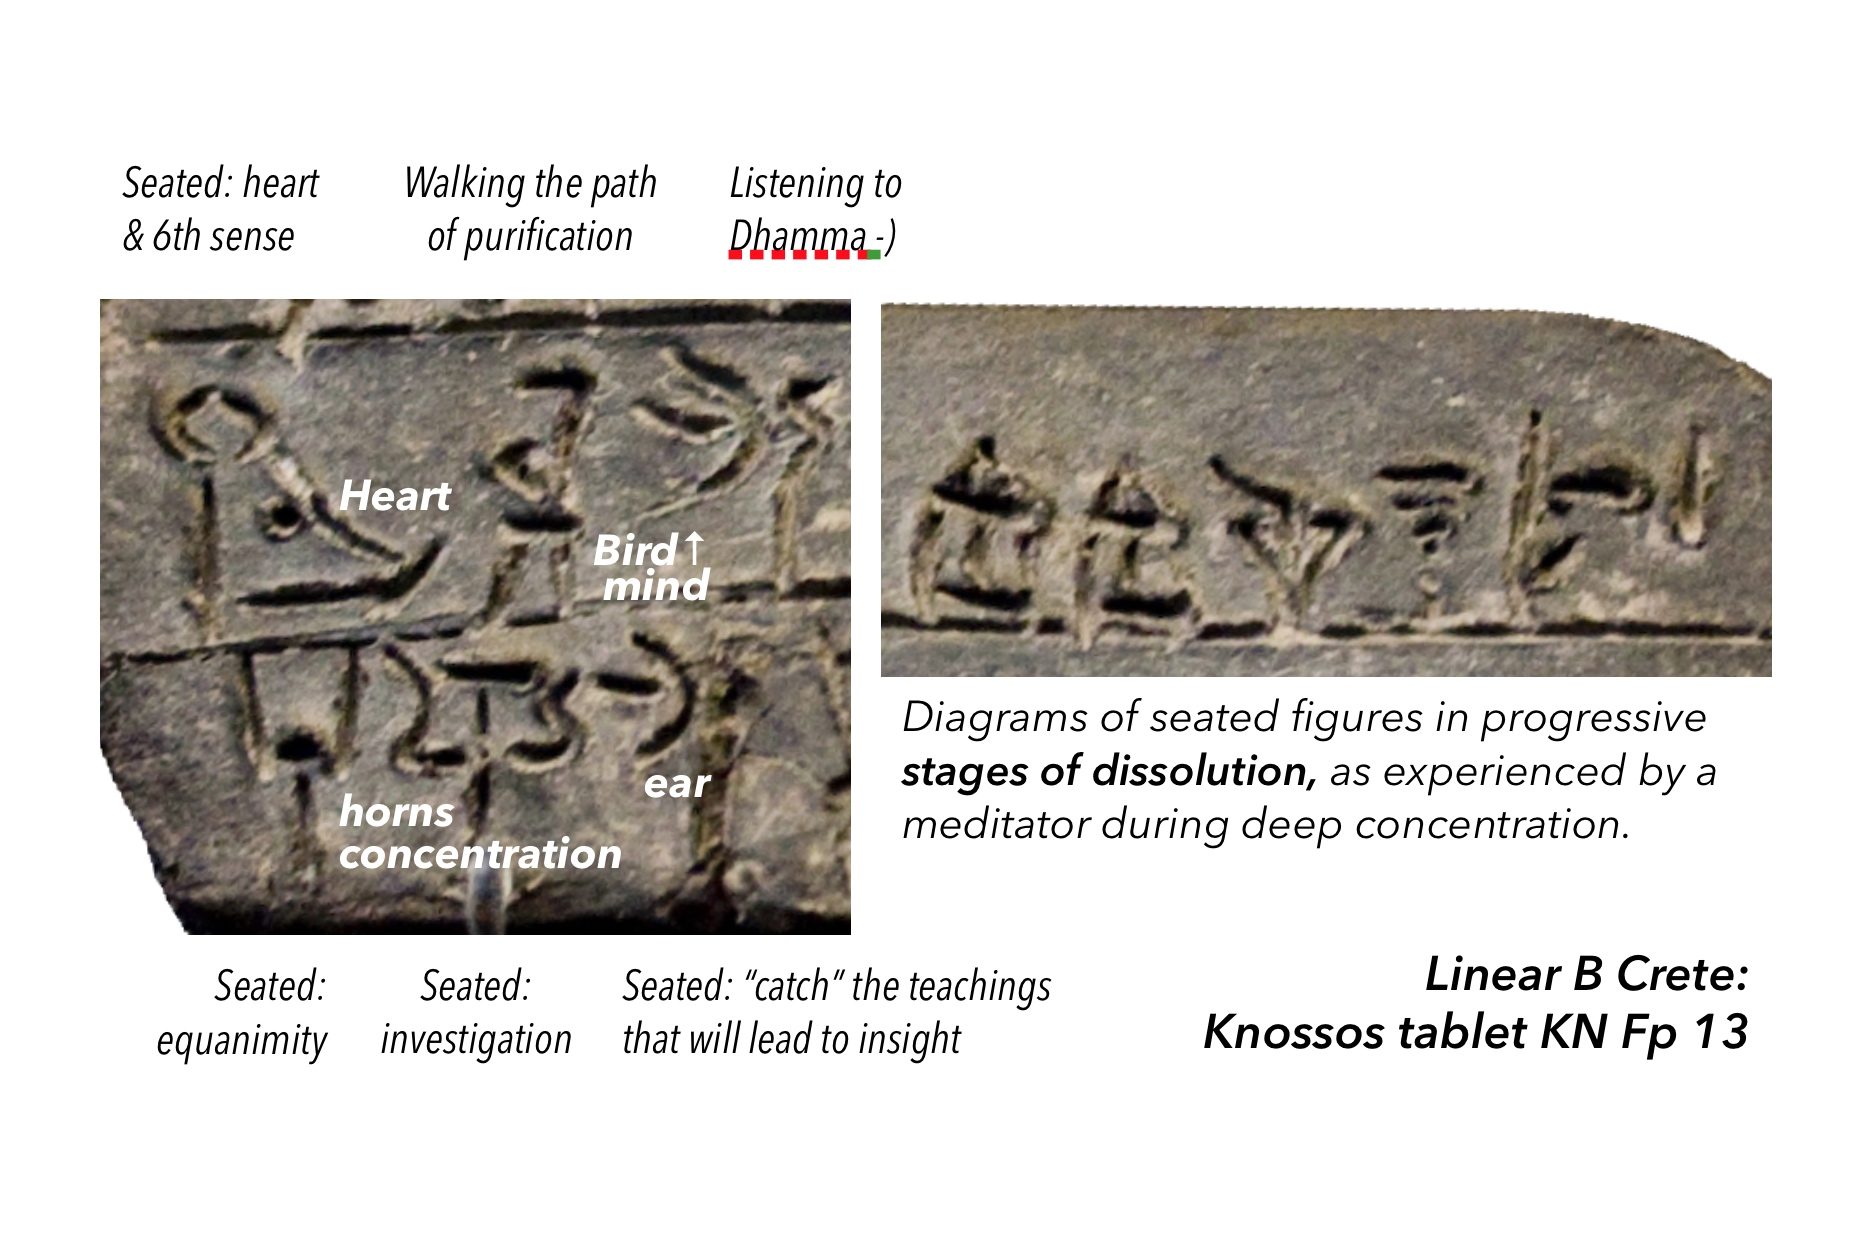 Crete: Knossos Linear B tablet KN13: meditator and stages of dissolution